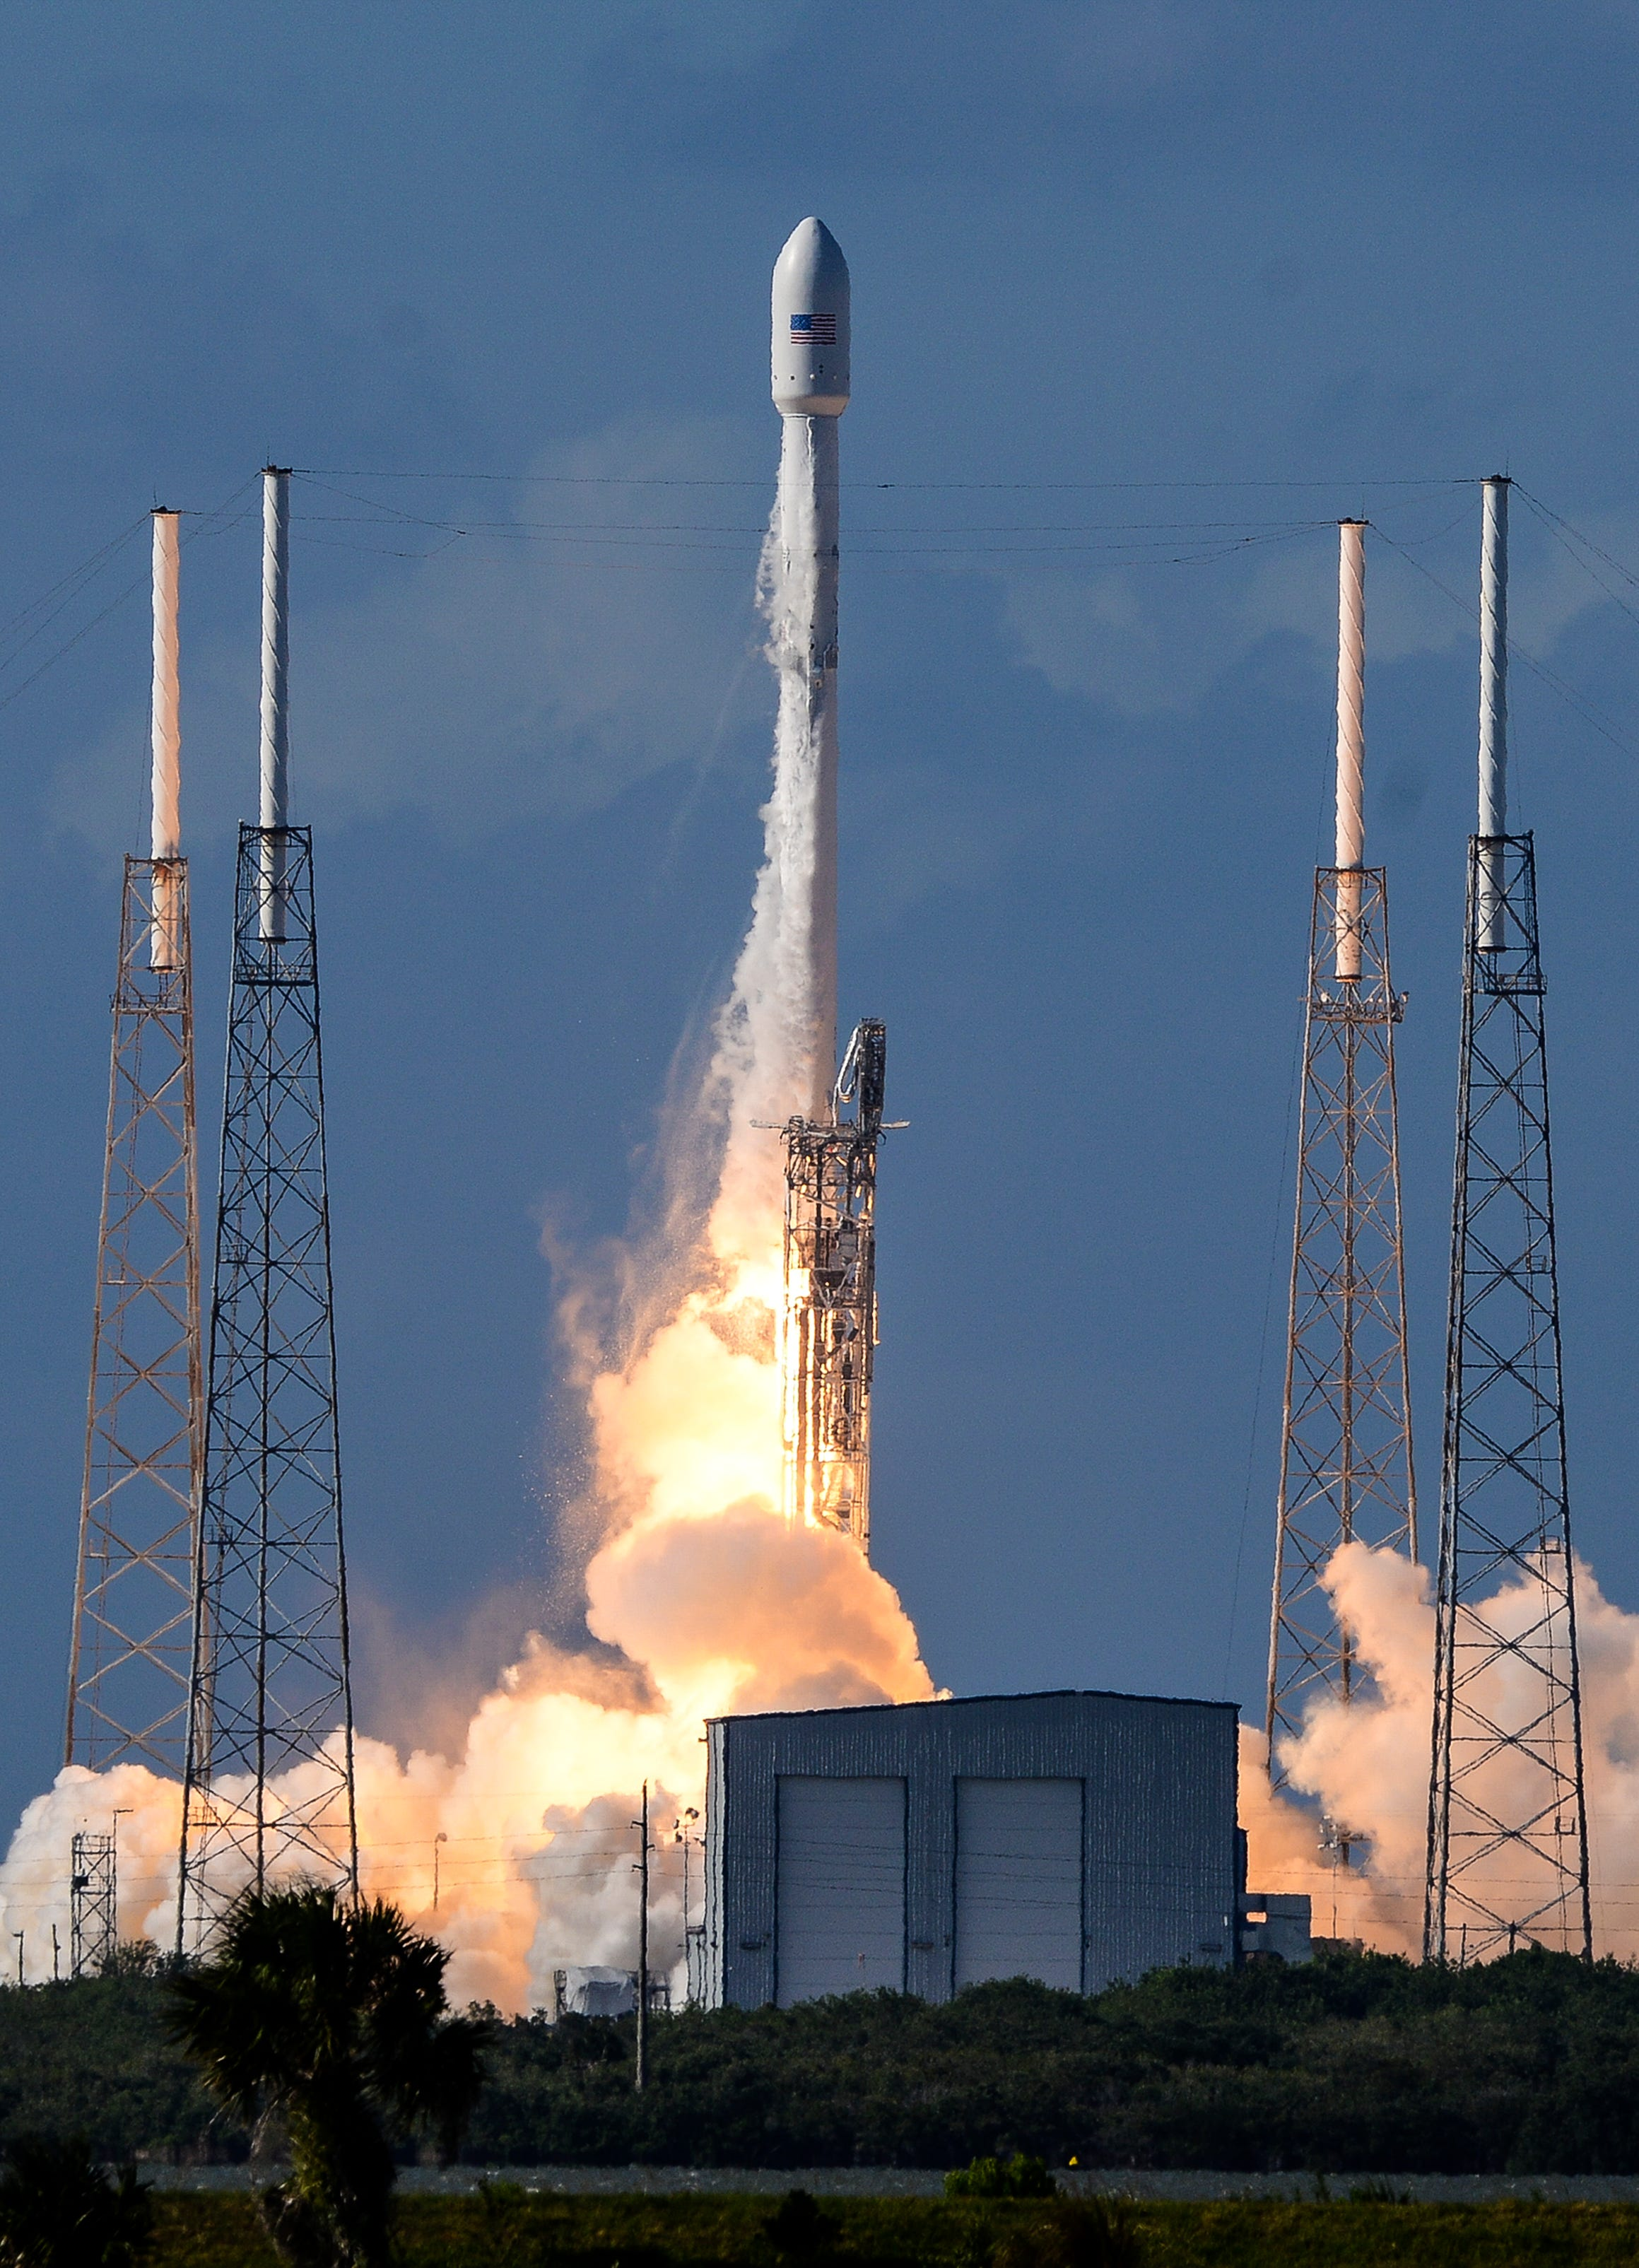 SpaceX lands fourth booster after successful Falcon 9 launch